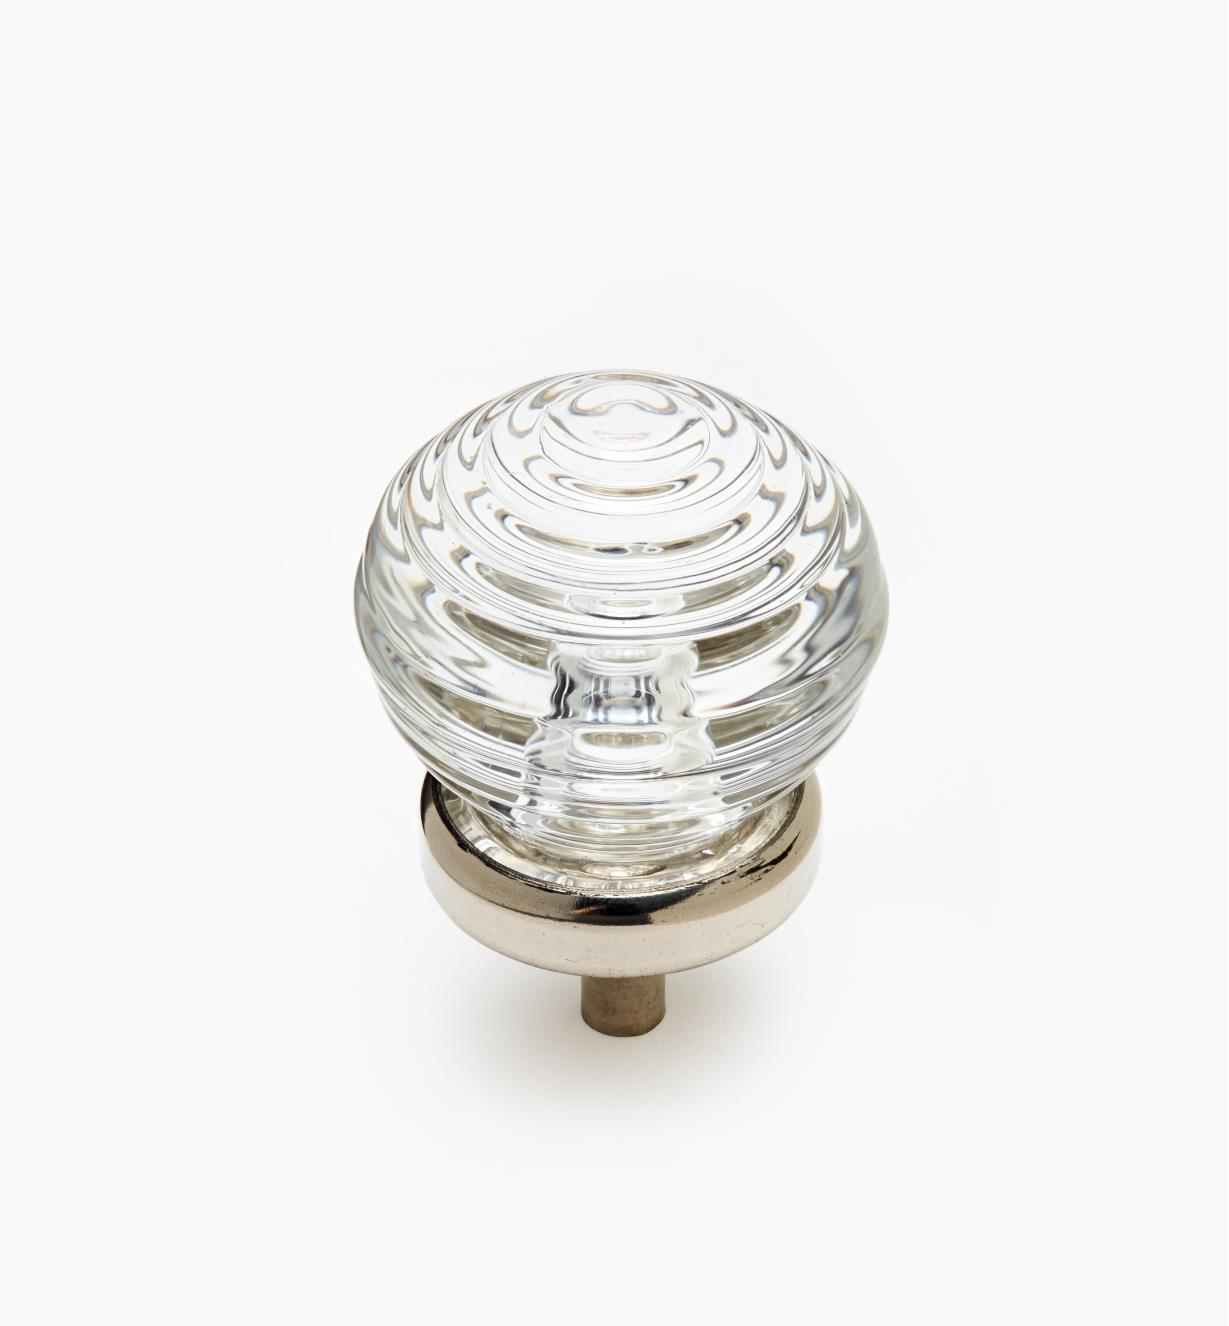 01A3840 - Glass Ringed Ball Knob, Nickel Plate base